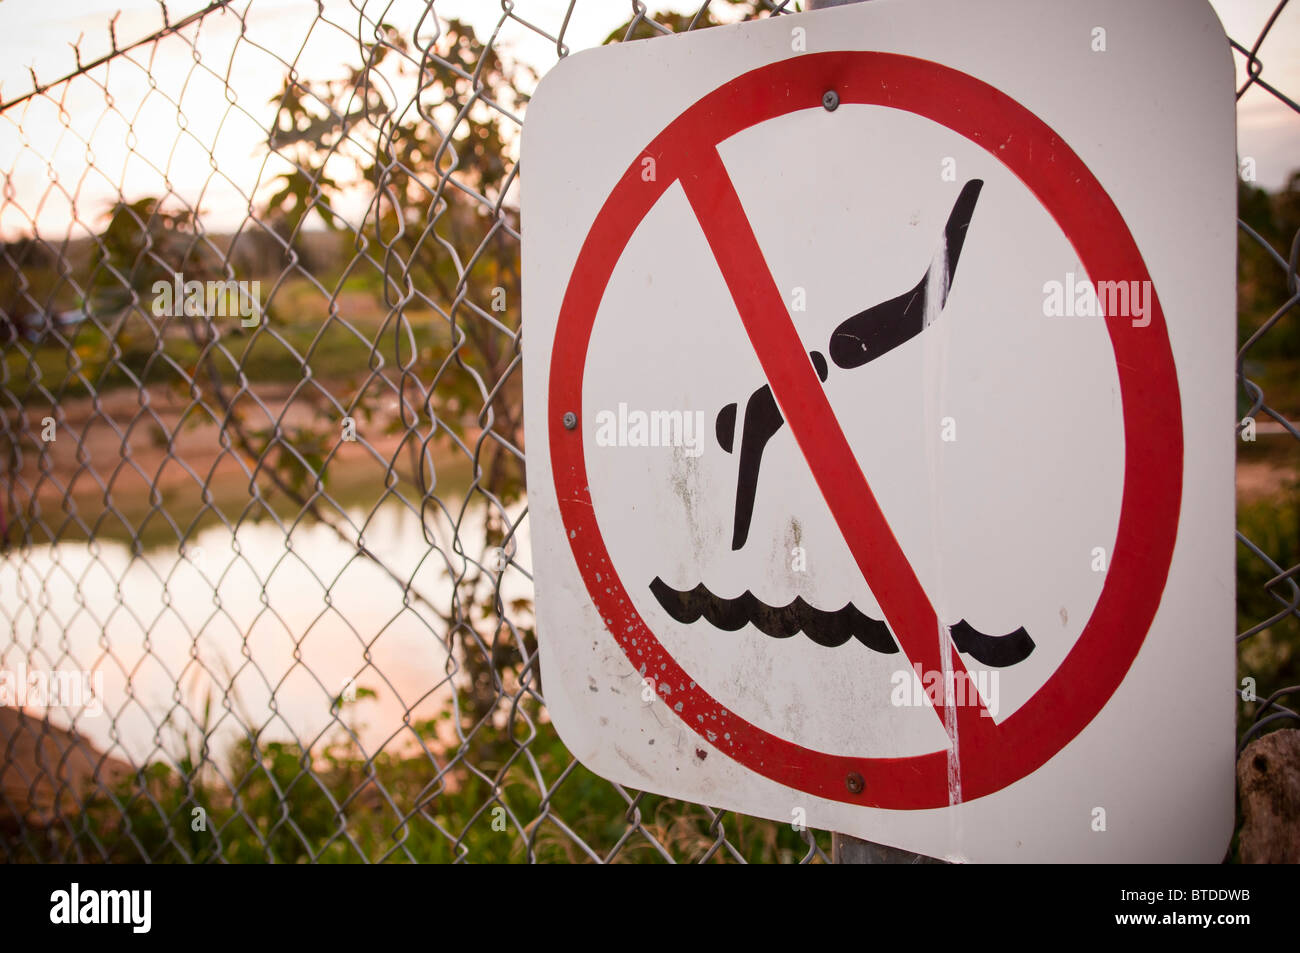 A no swimming warning sign on a fence, with pool behind - Stock Image